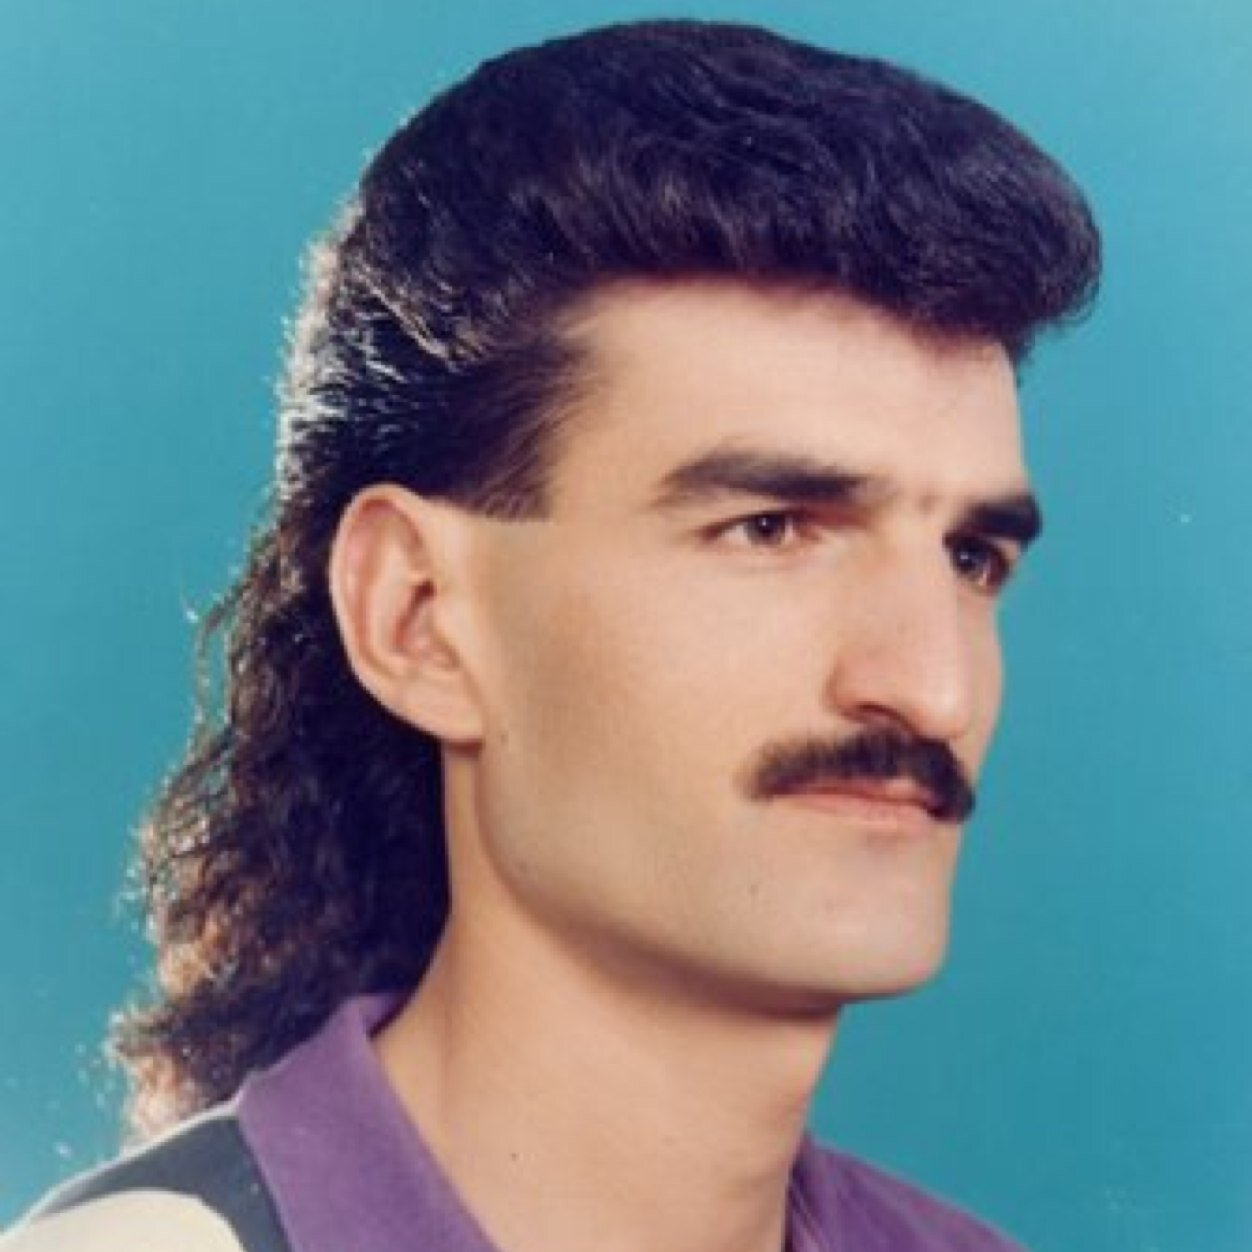 20 Ways to Style a Mullet - TheThings